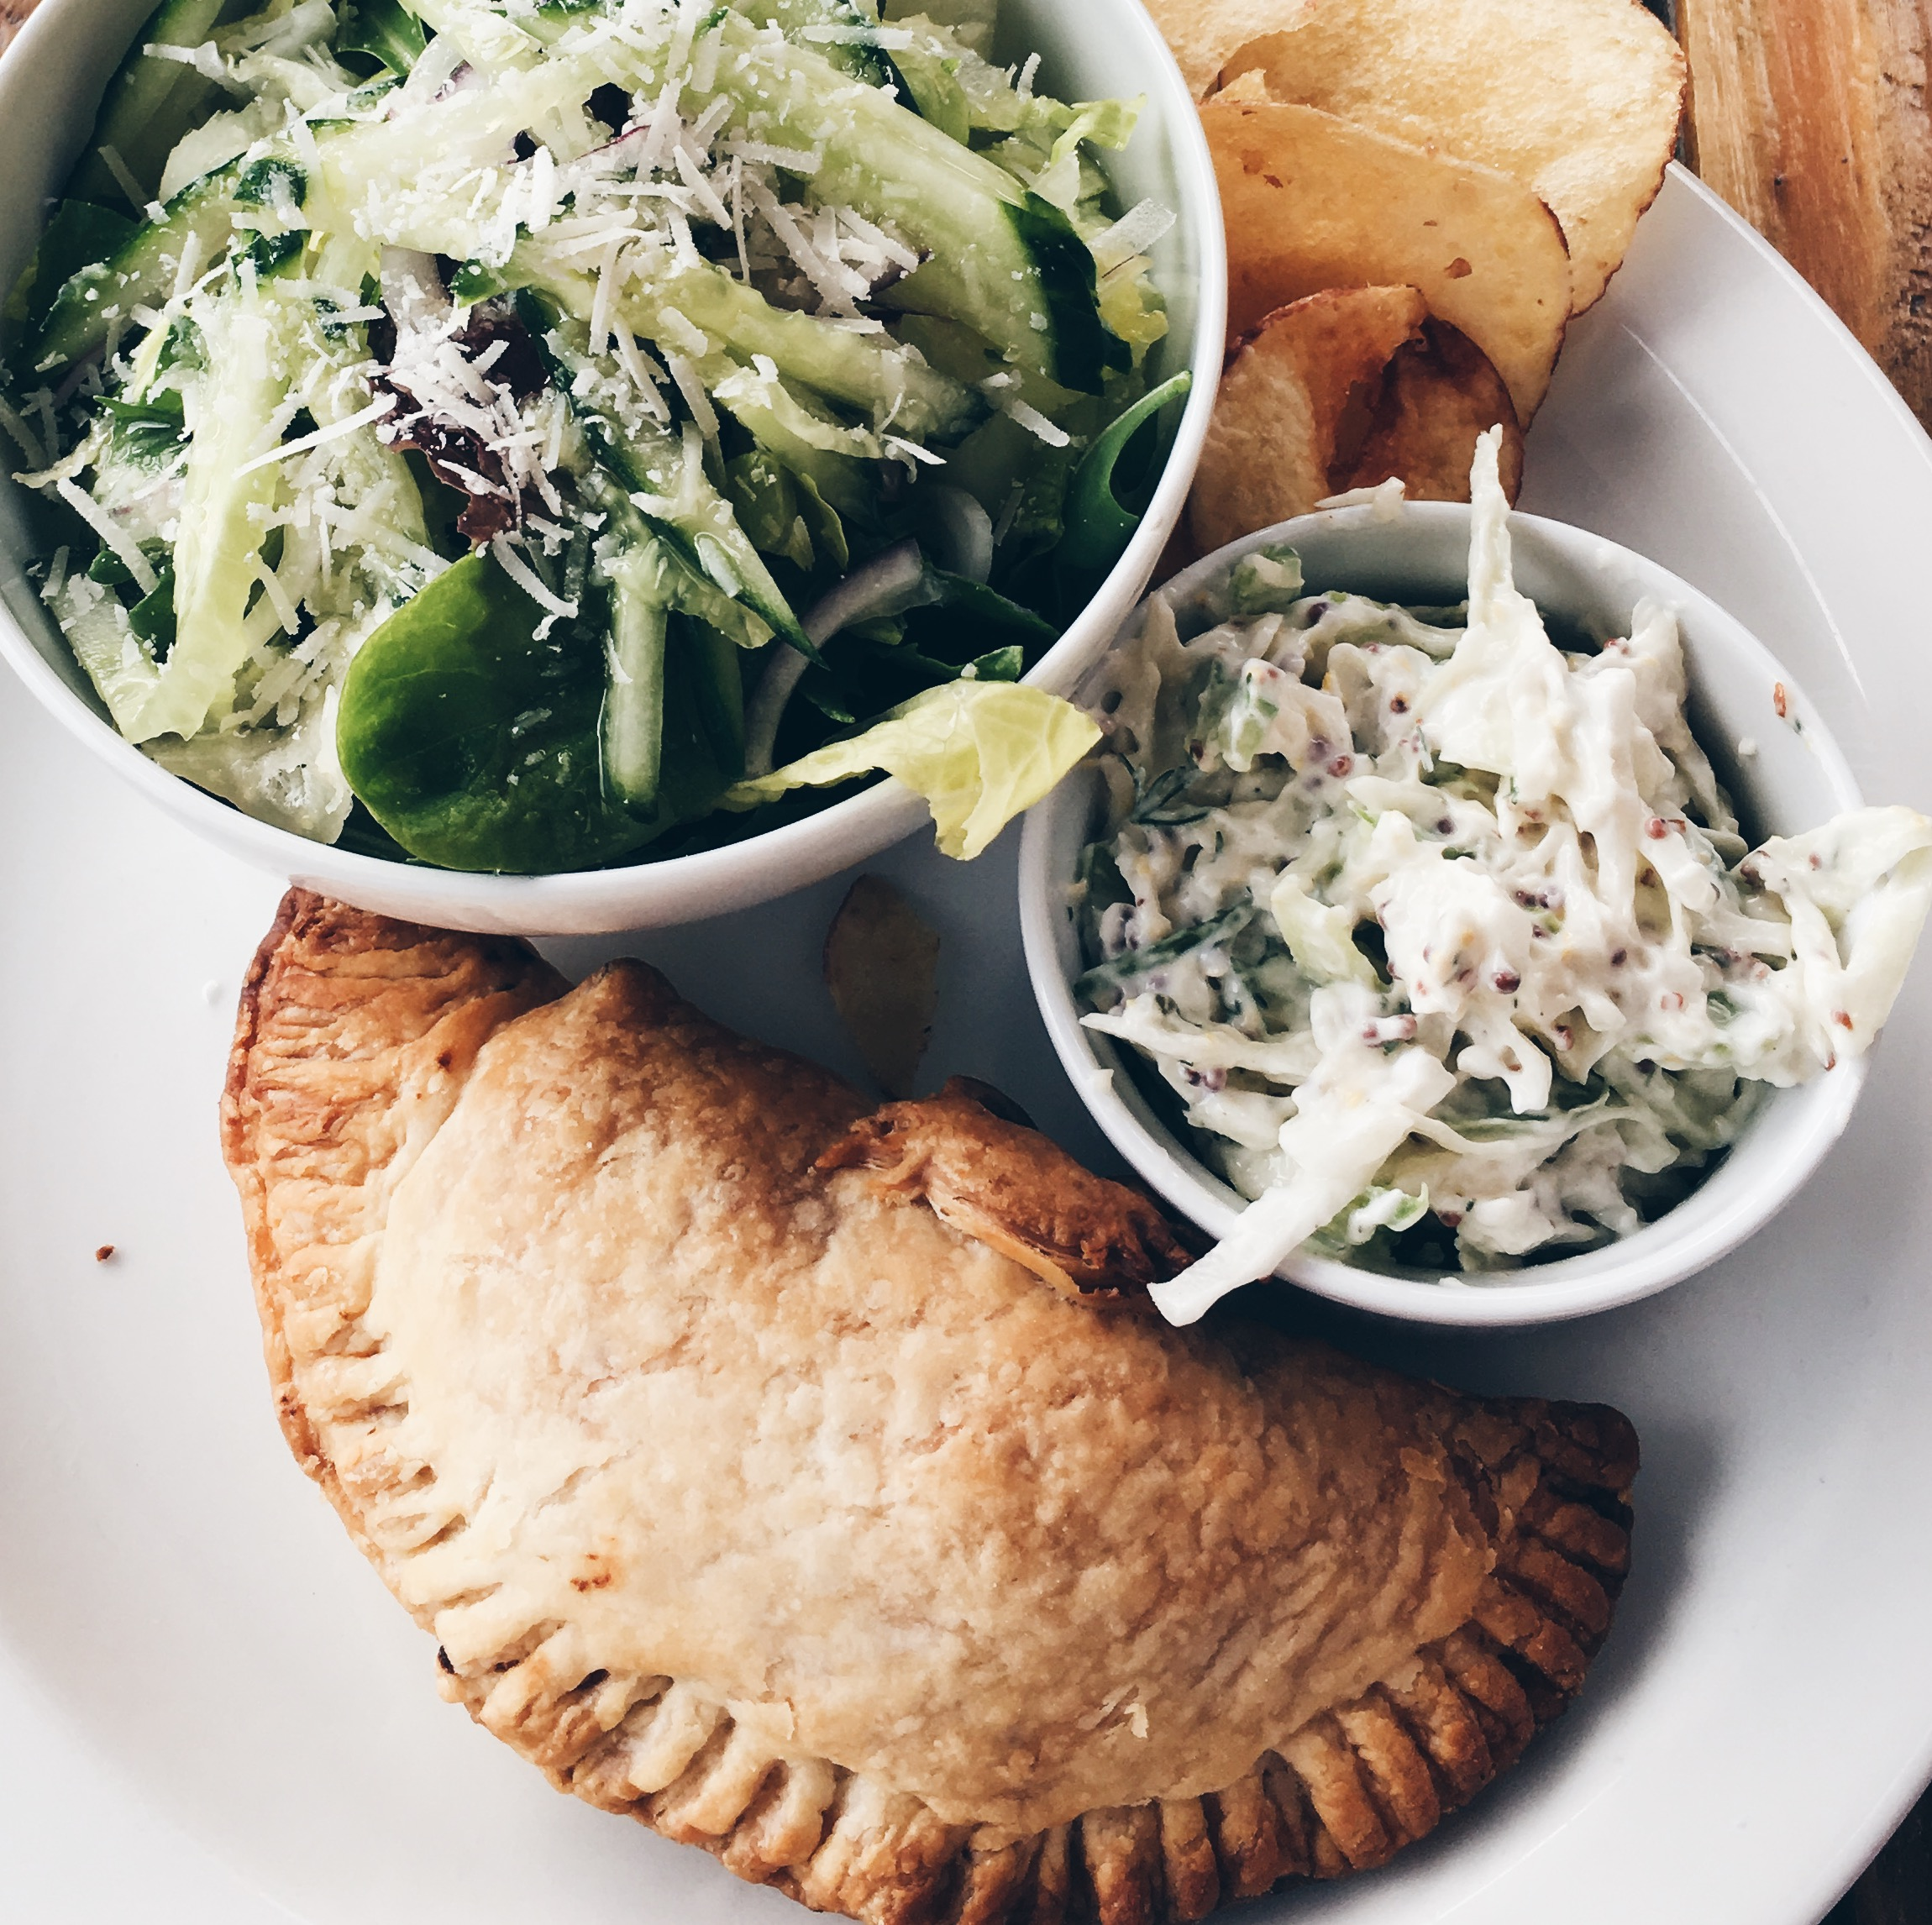 The very special crab pasty at The Crab Shed.  A taste of the sea!!!